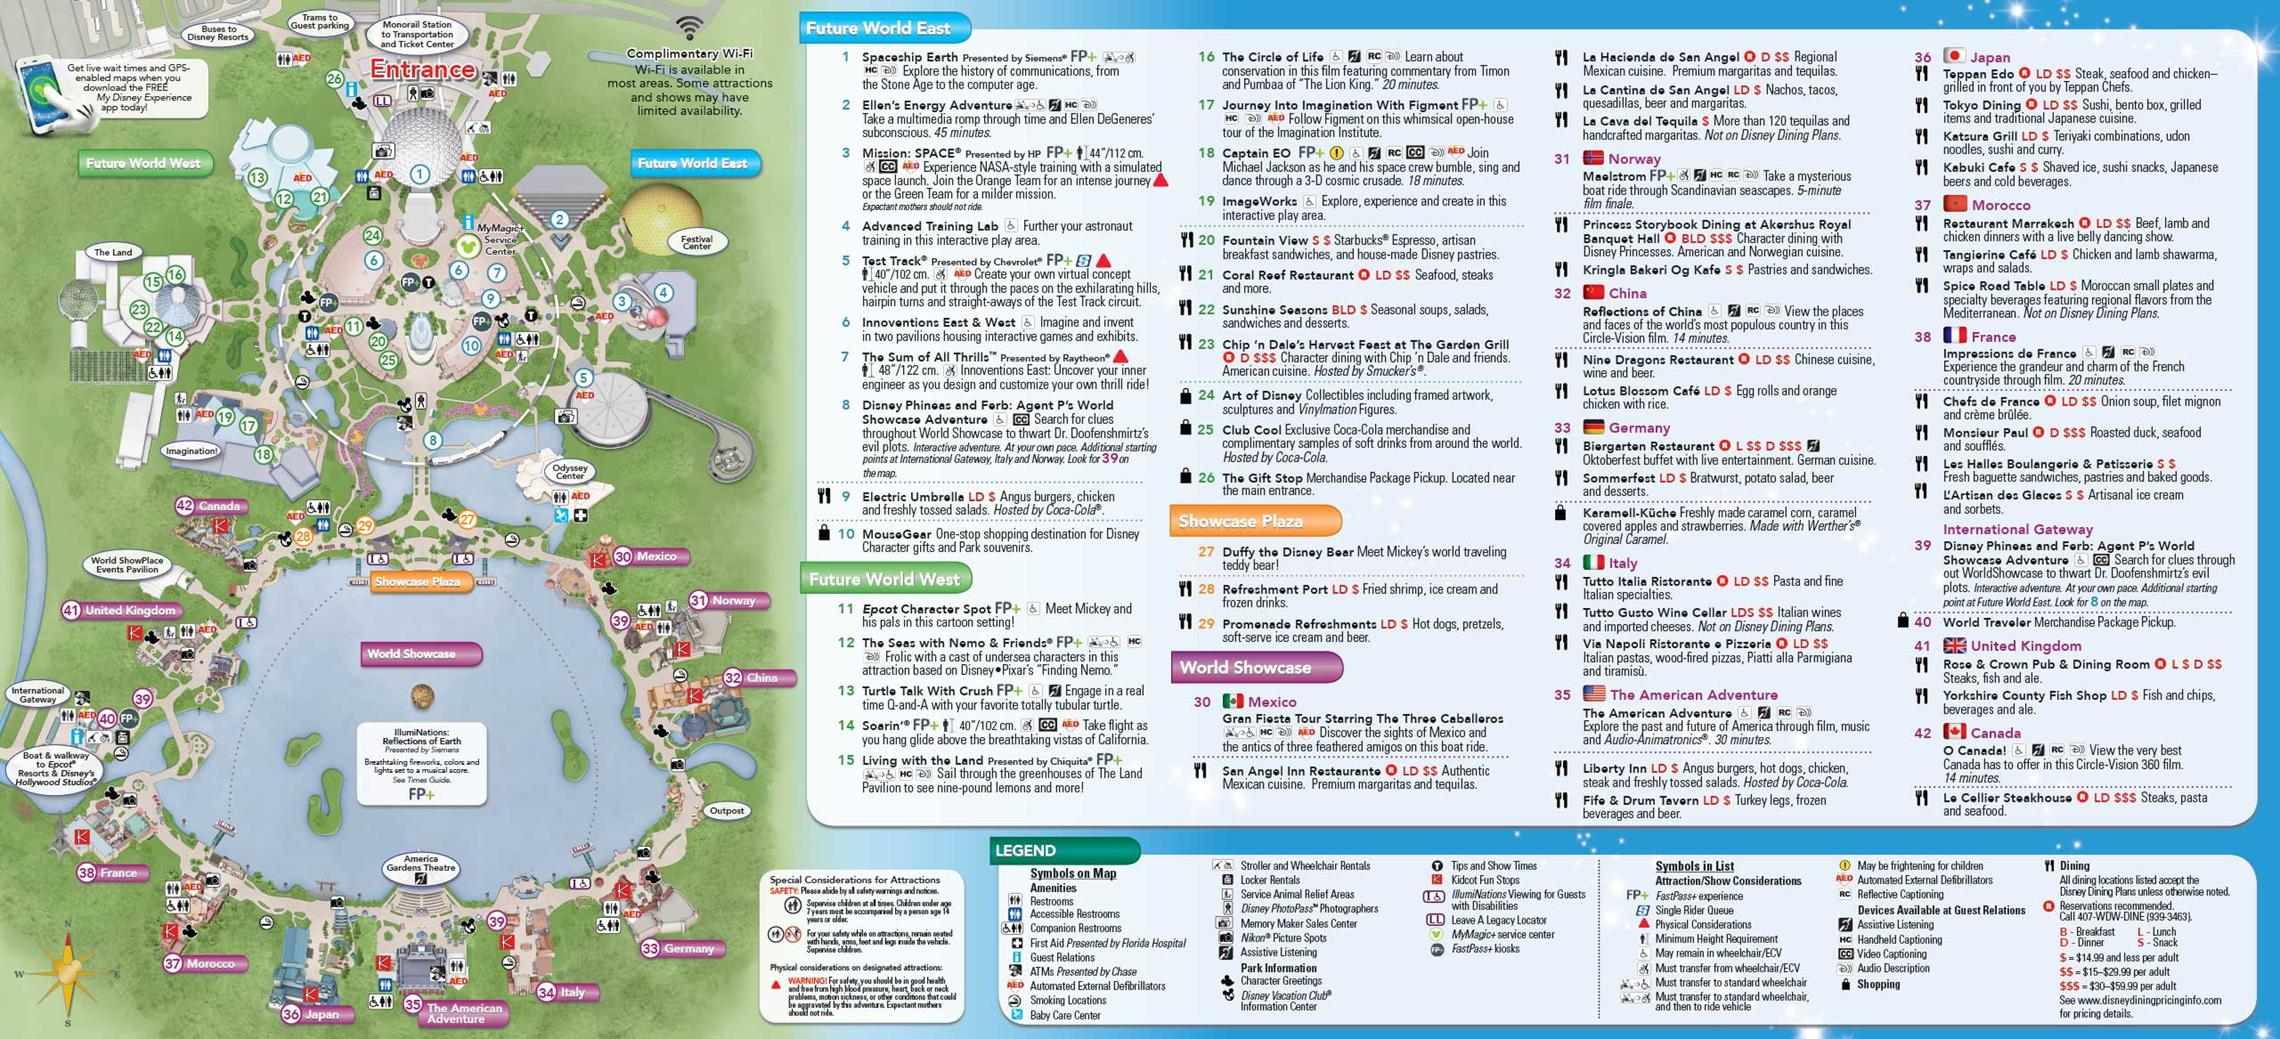 2014 Epcot guide map with FastPass+ details